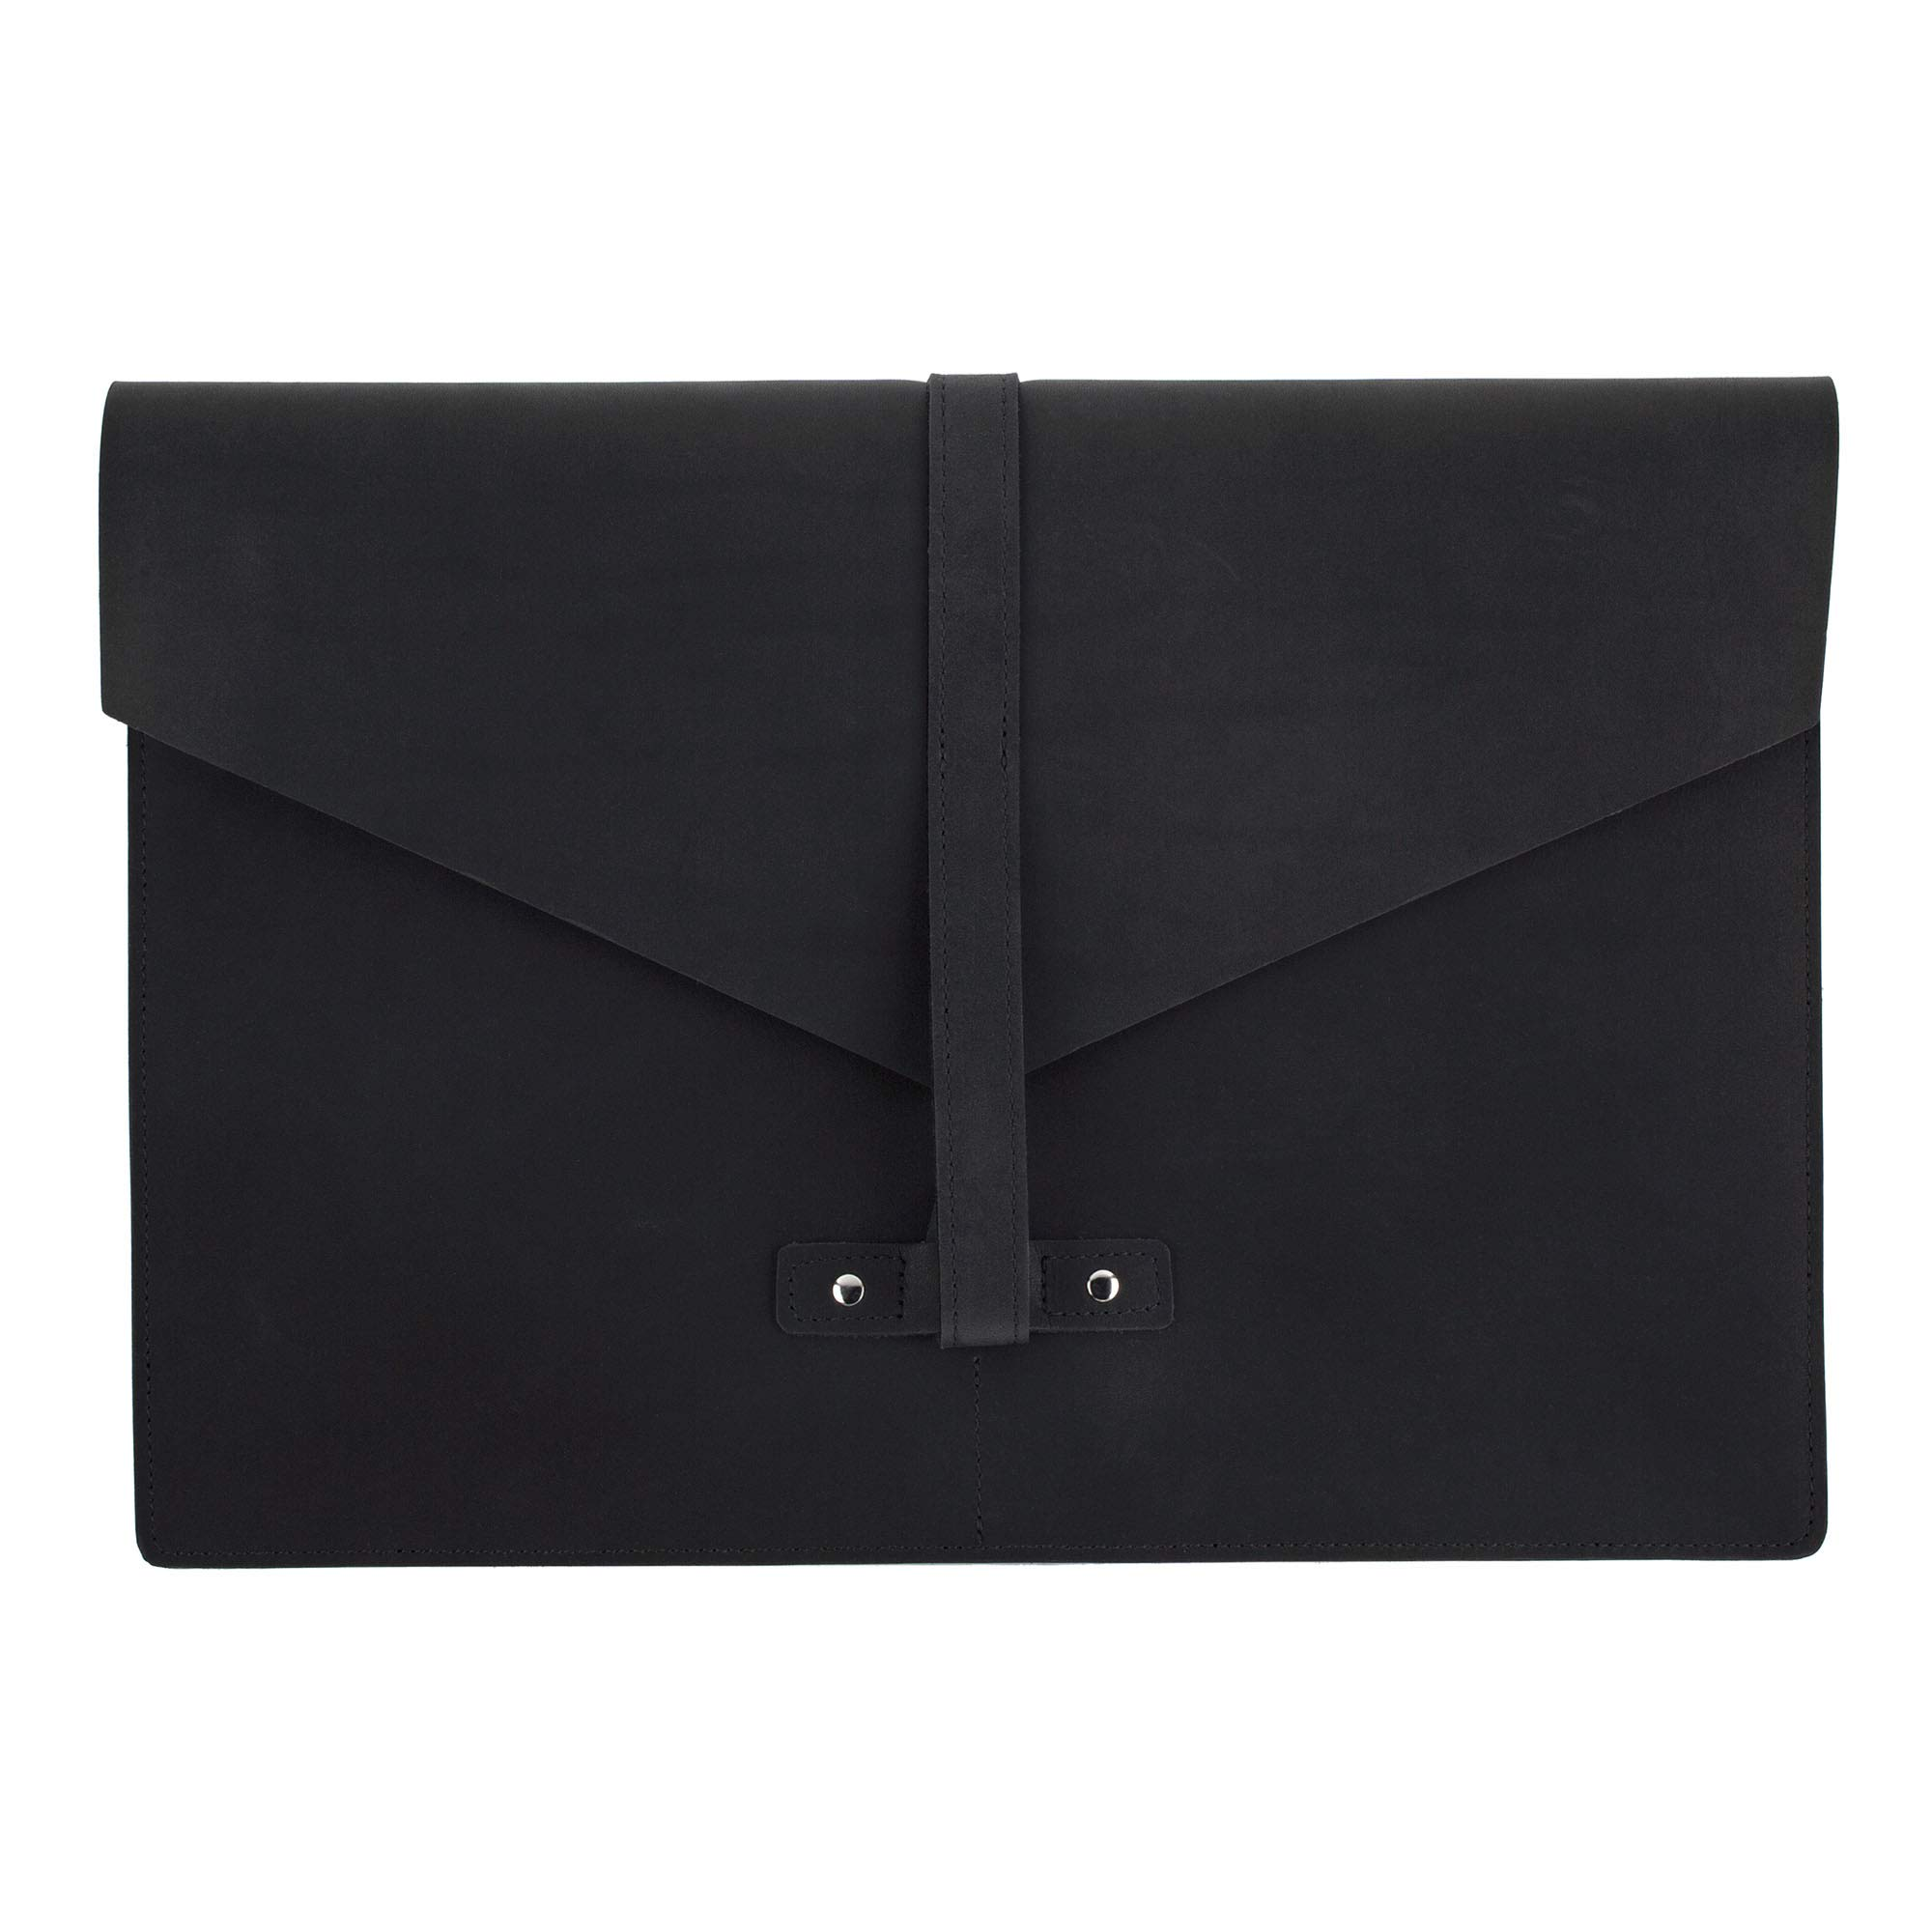 SLATE COLLECTION Belltown Small Laptop Sleeve, Full-Grain Leather (Midnight, fits 13'' Laptop) by SLATE COLLECTION (Image #3)